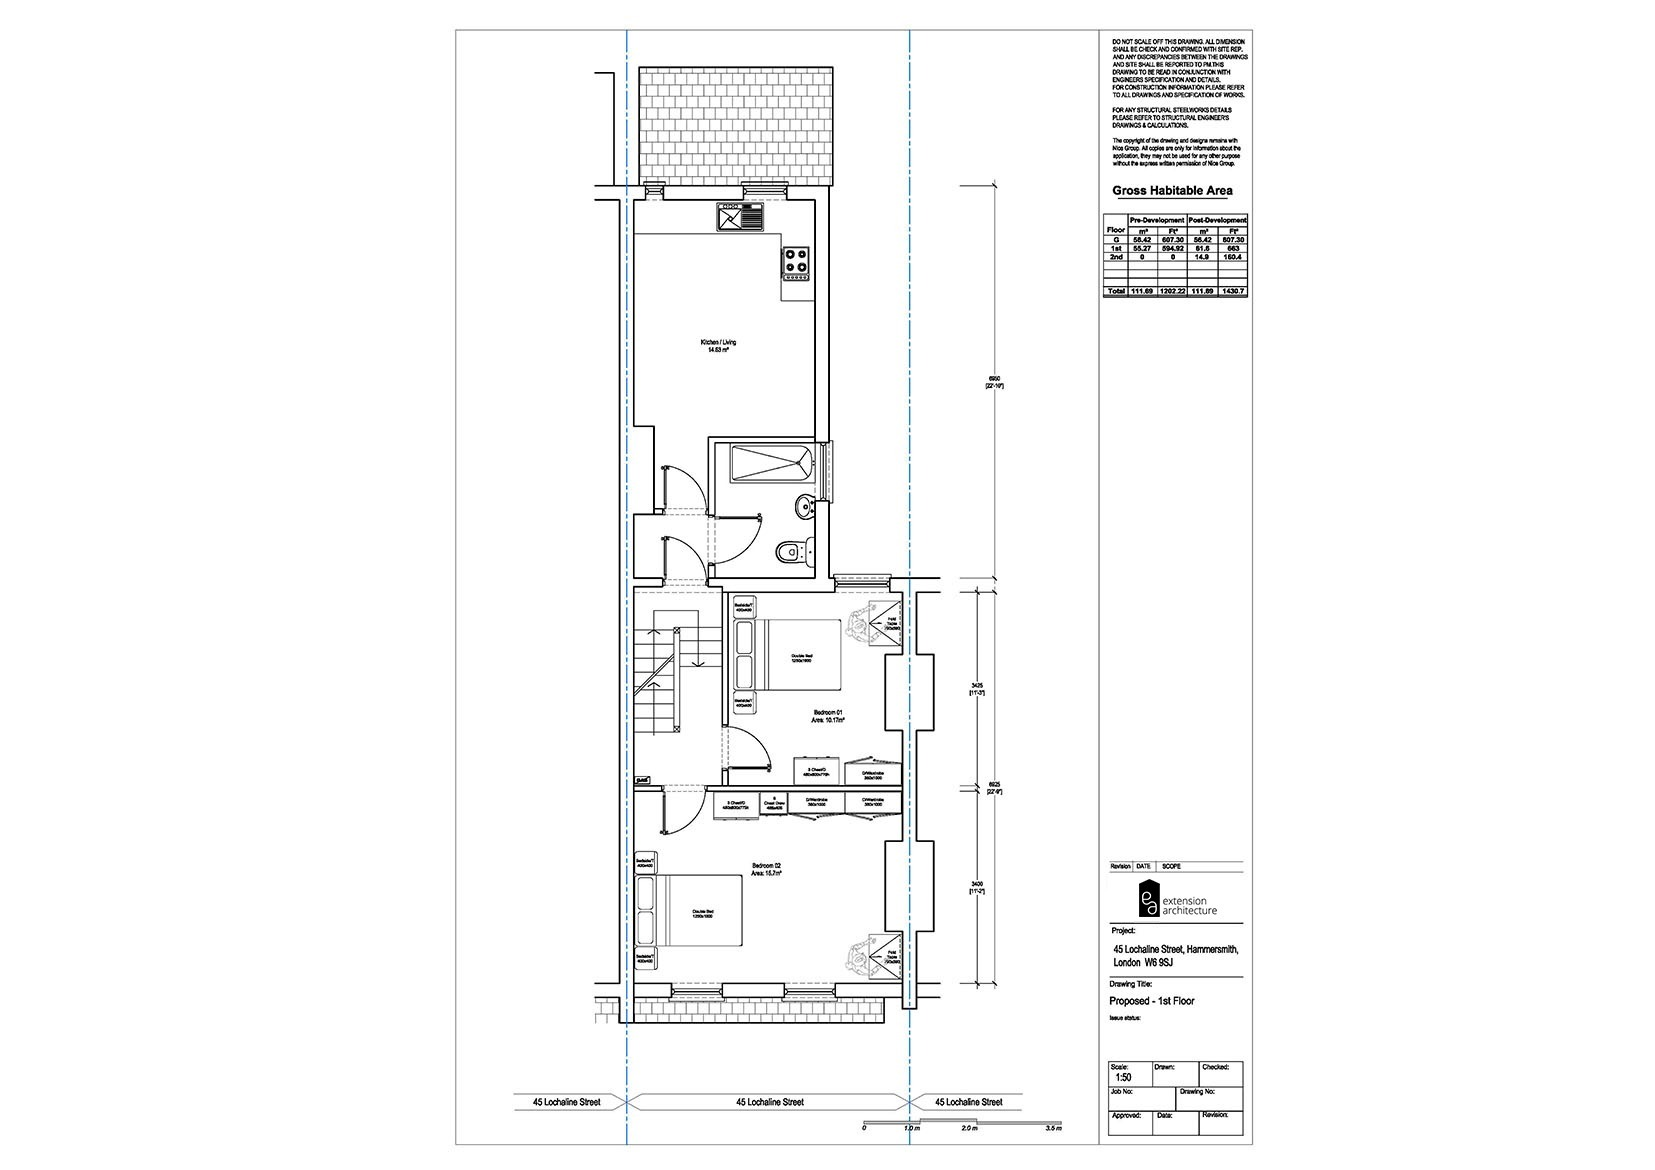 RESIDENTIAL 45LS proposed_convert to flats...page 02